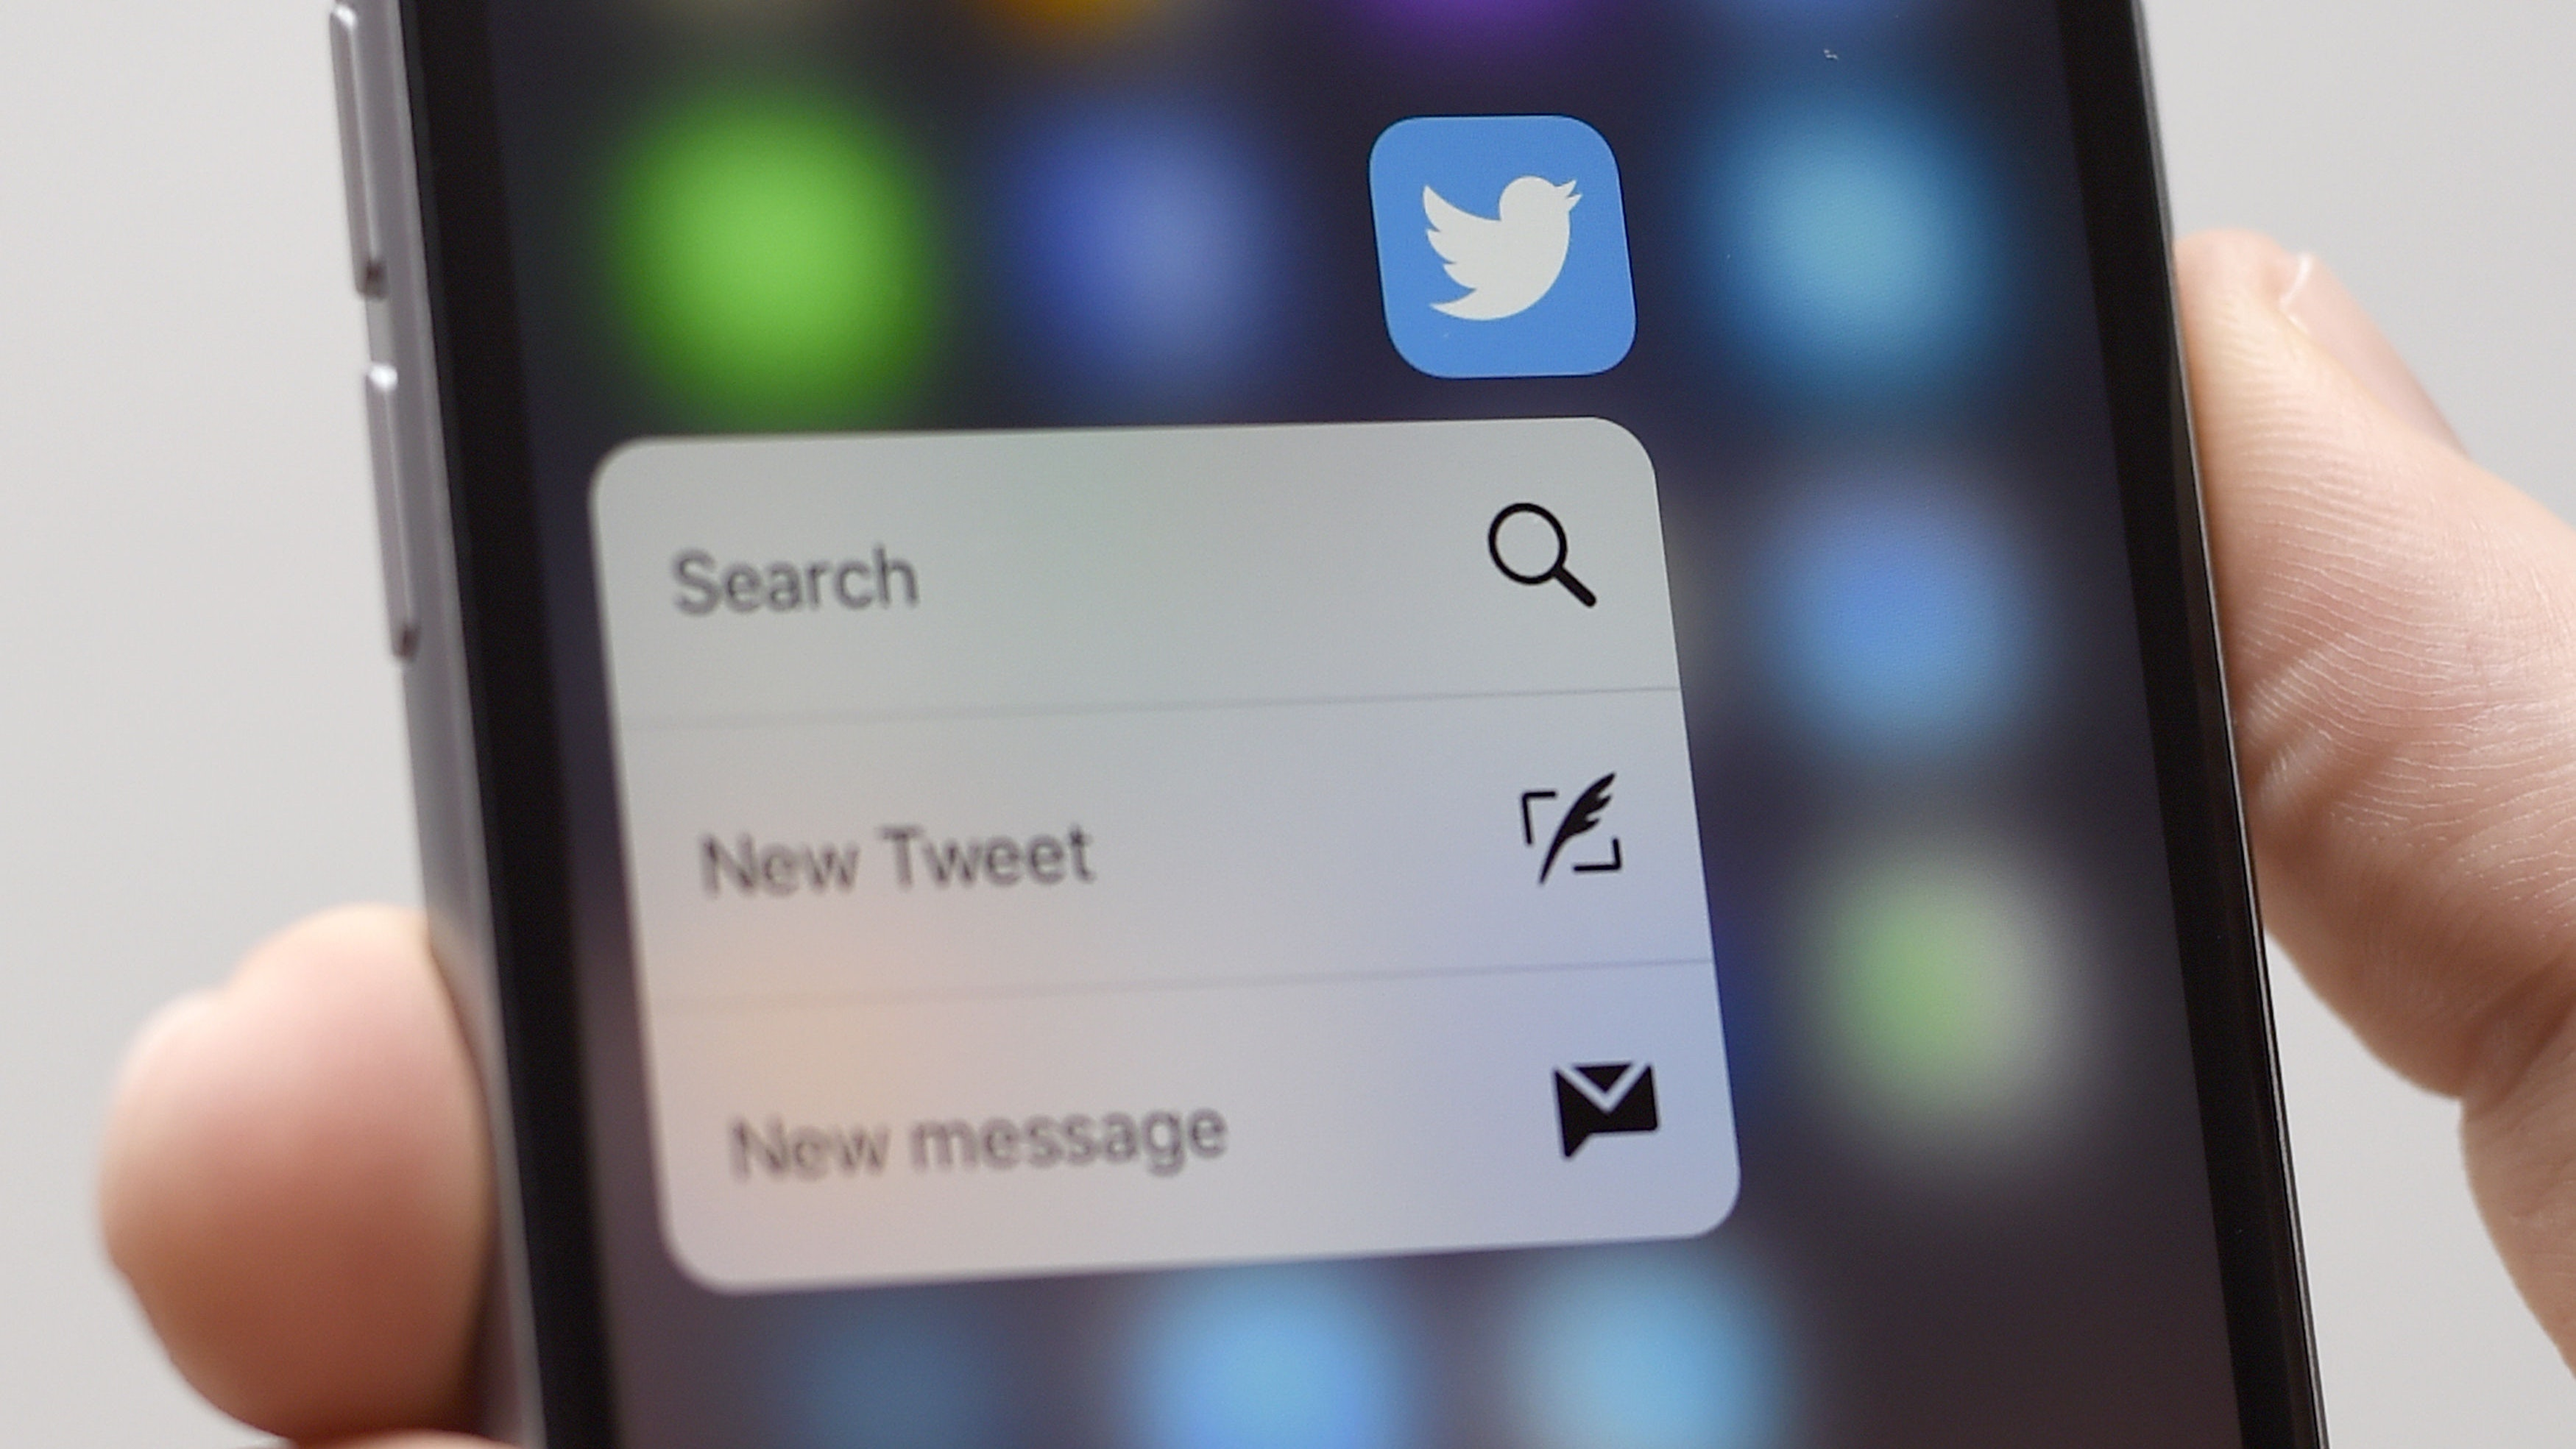 Twitter plans on breaking all third-party apps/clients this June